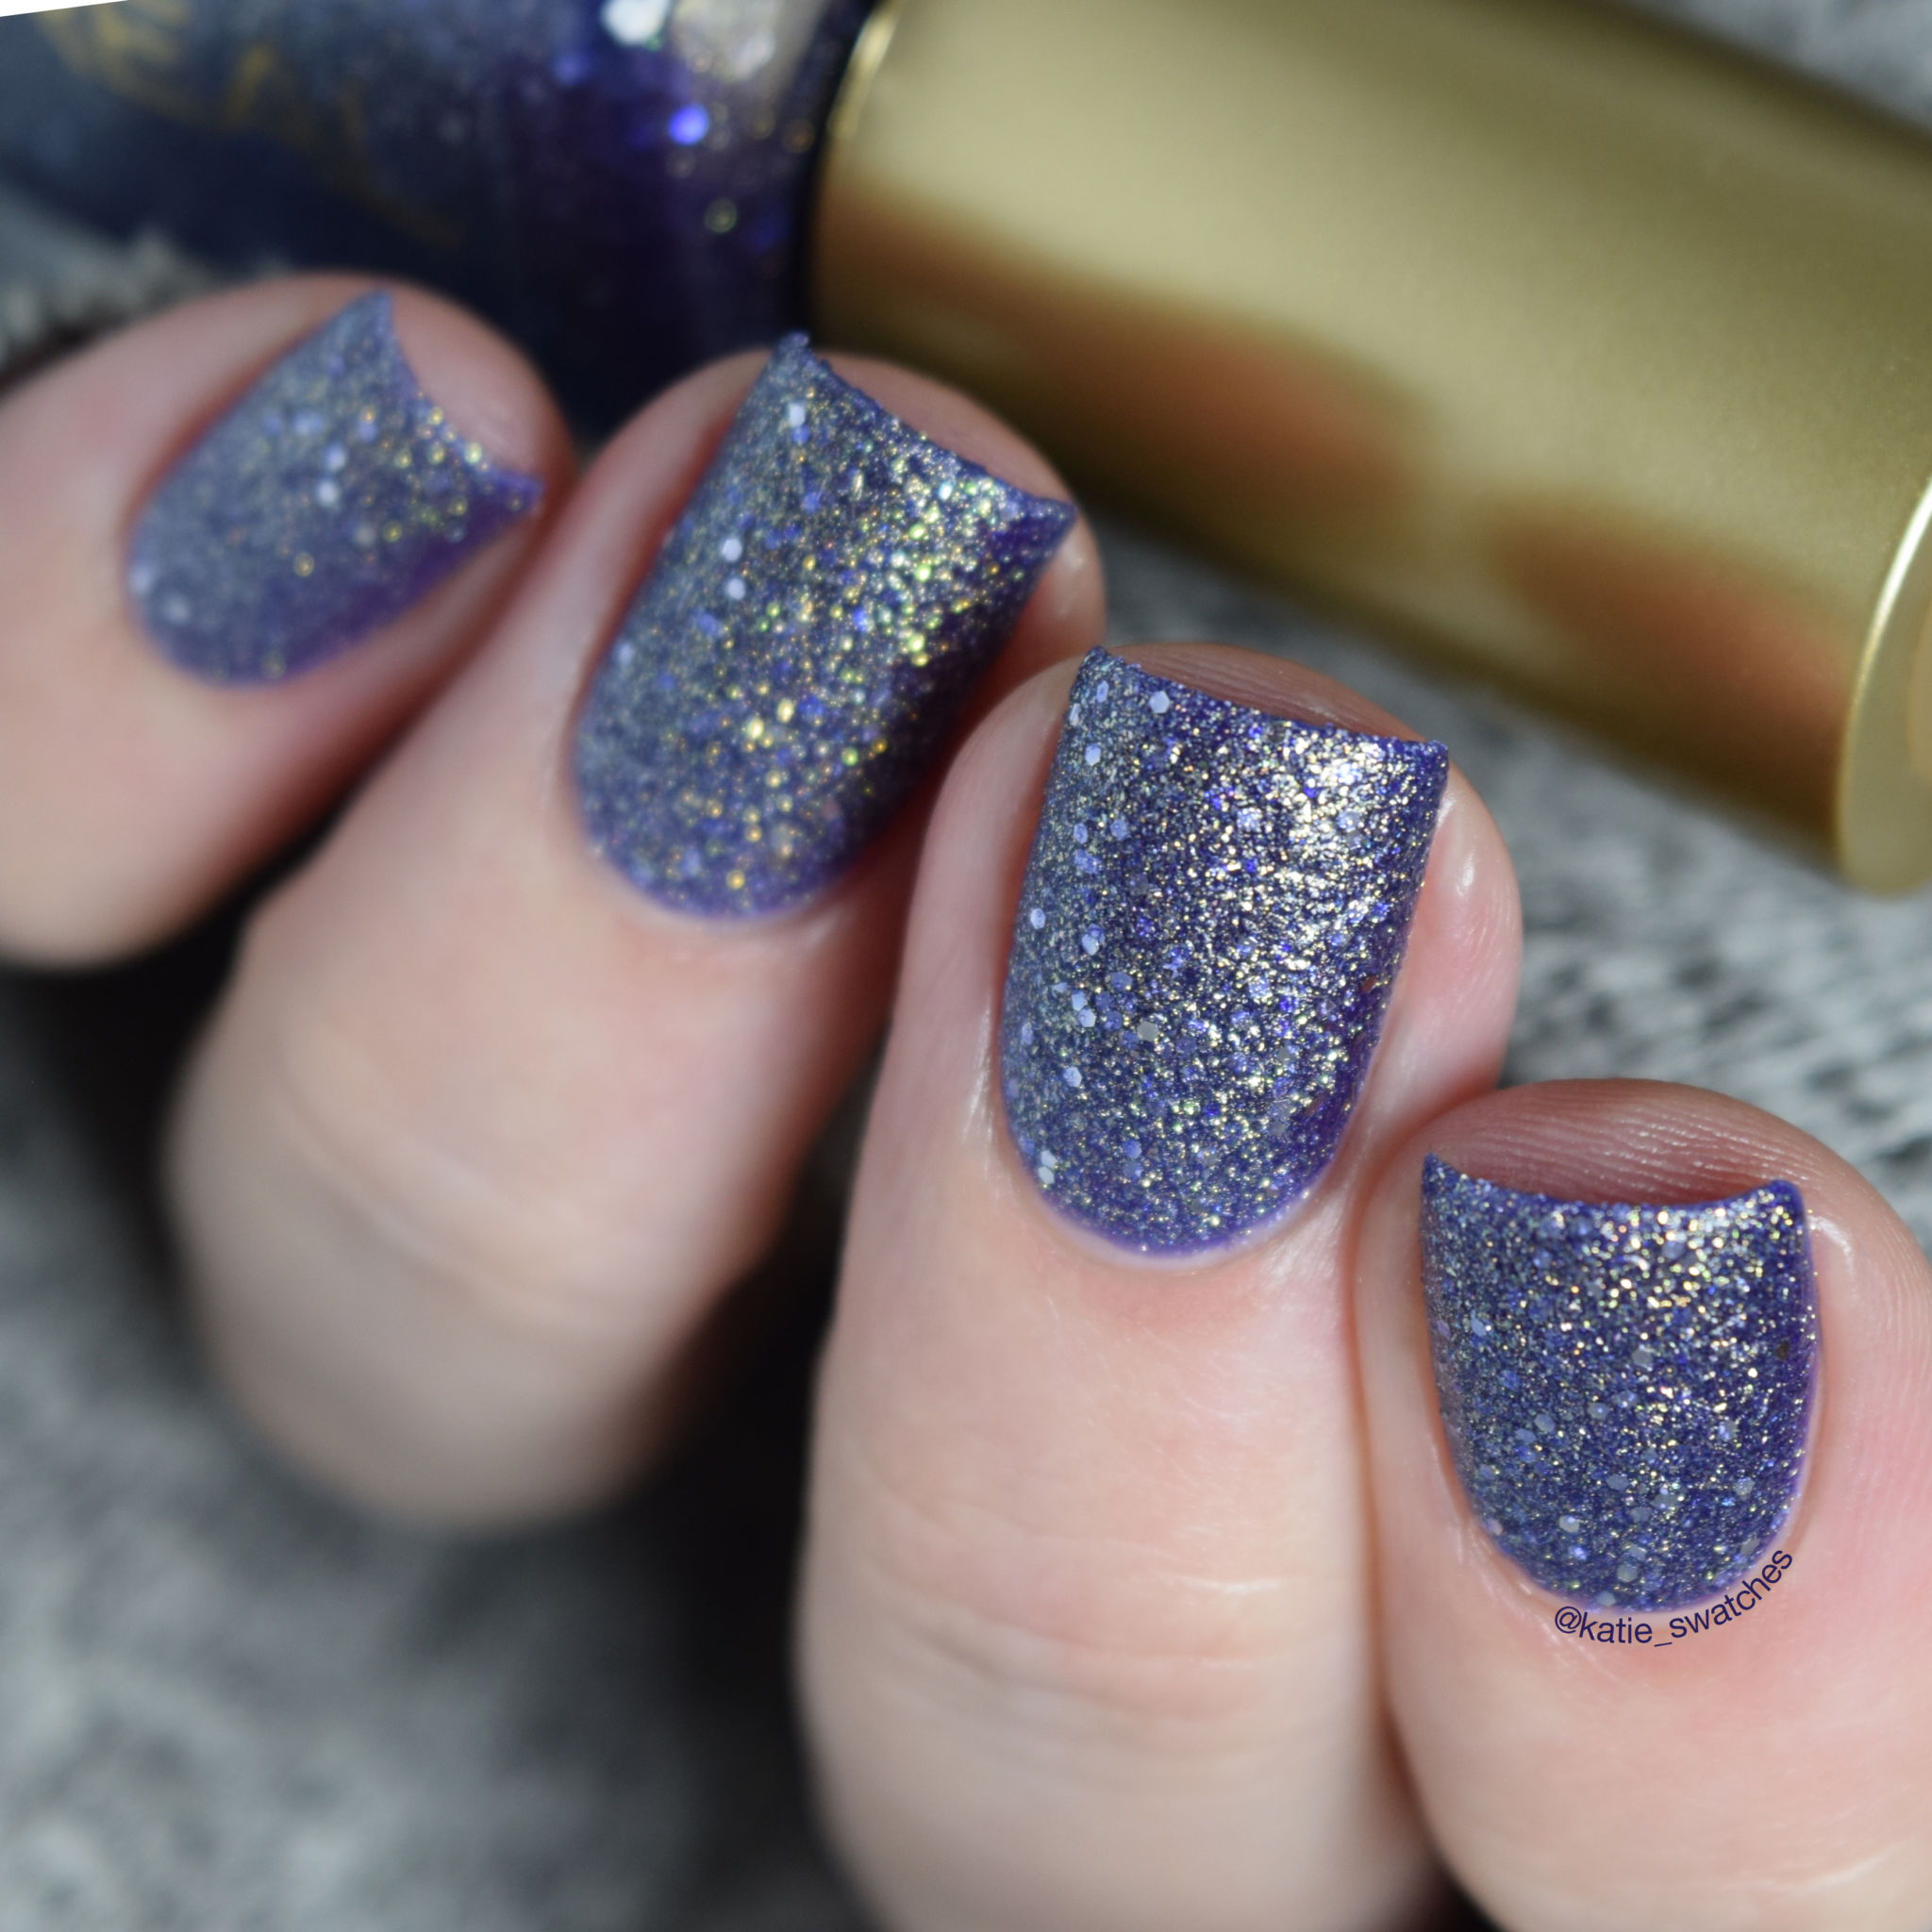 L'Oreal Too Dimesional!? 136 textured nail polish swatch